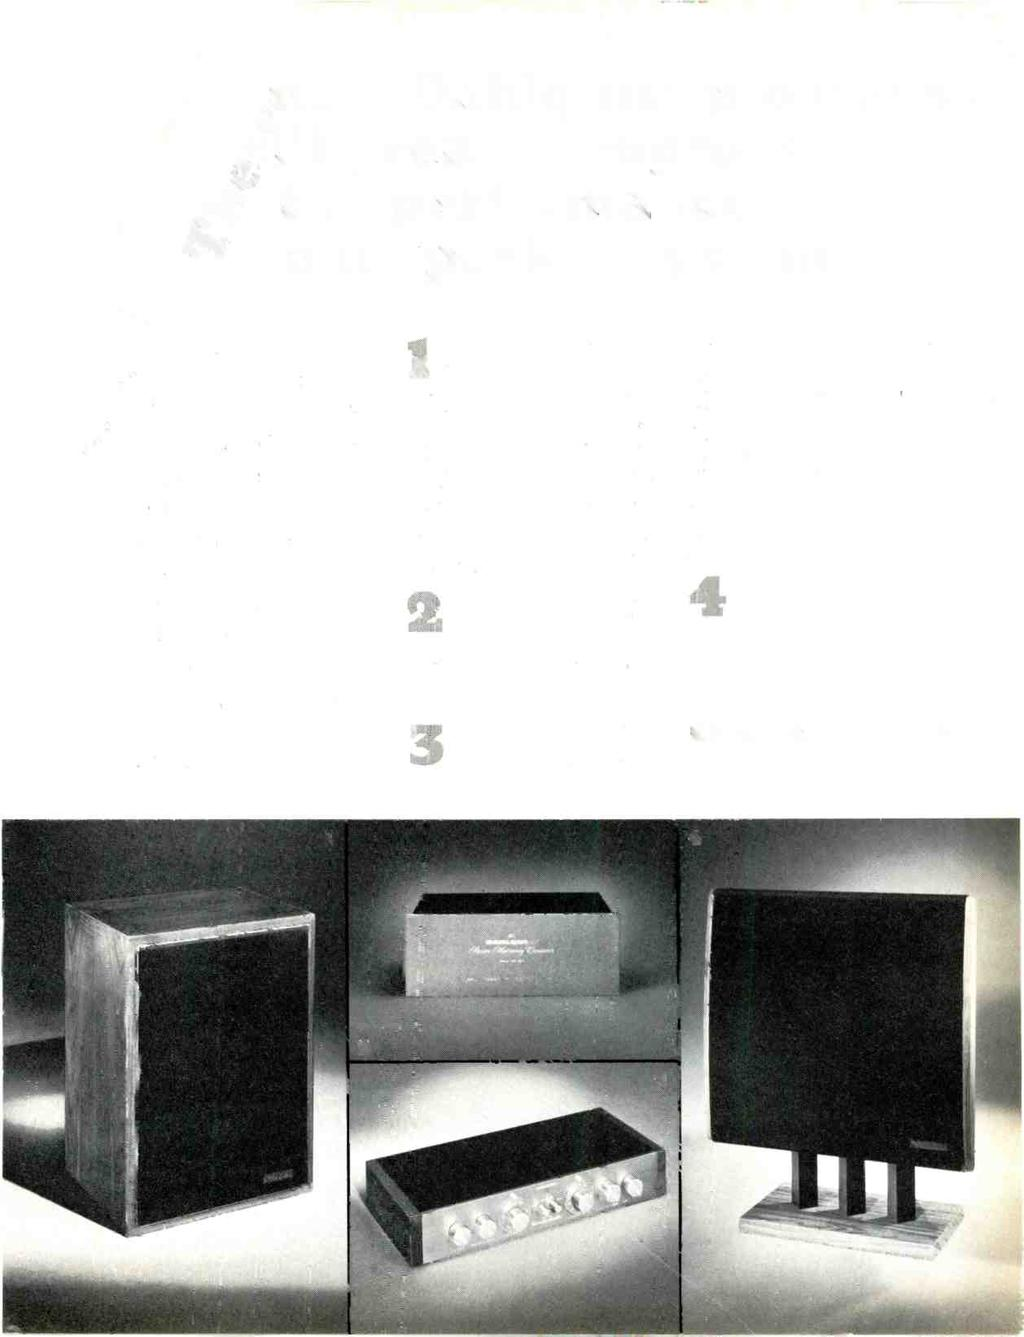 Wide Bandwidth Preamp Pdf Higain Speaker Listening Amplifier Circuit Kit Aa5 Dew Dahlquist Products Greatly Improve Se The Performance Our System Du Four S